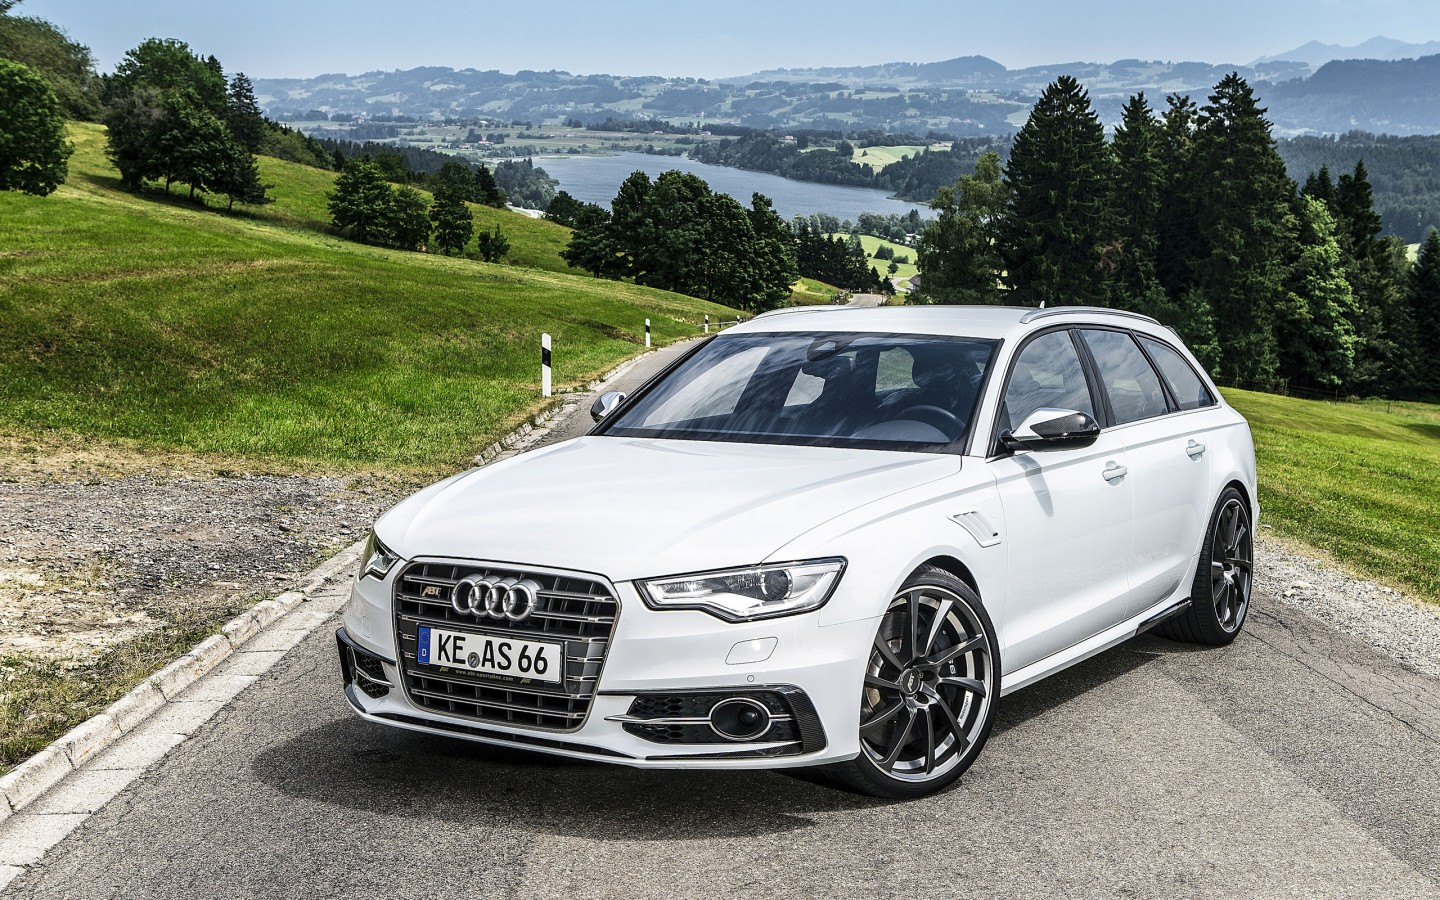 2013 ABT Audi AS6 R Wallpaper in 1440x900 Resolution